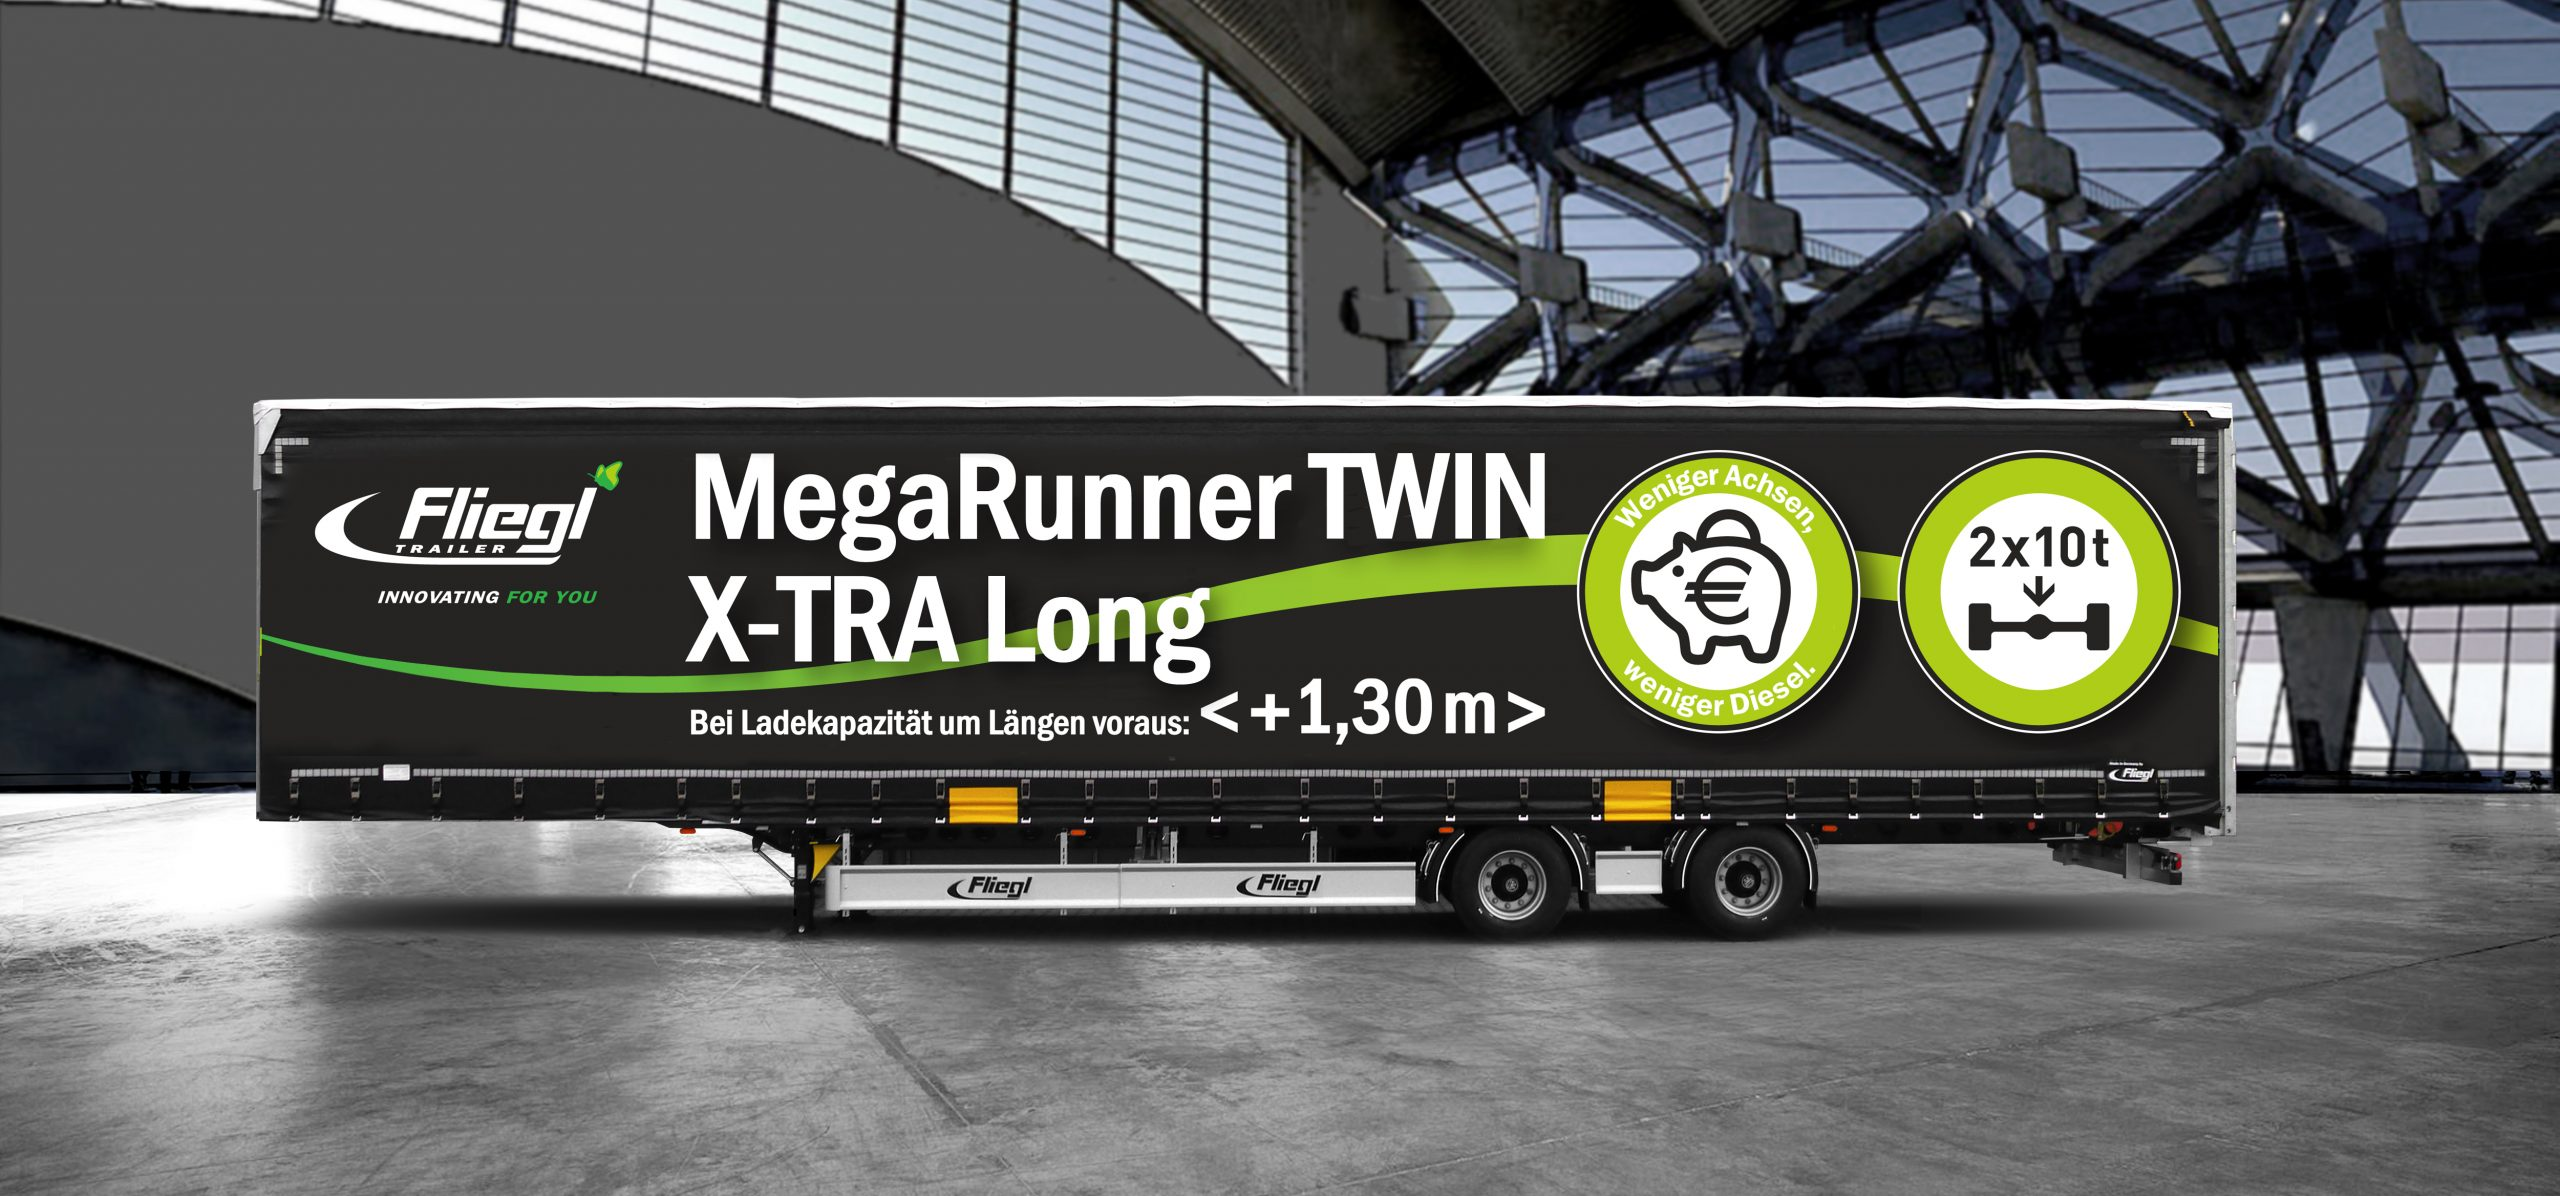 MegaRunner-TWIN-XTRA-long-1-scaled.jpg